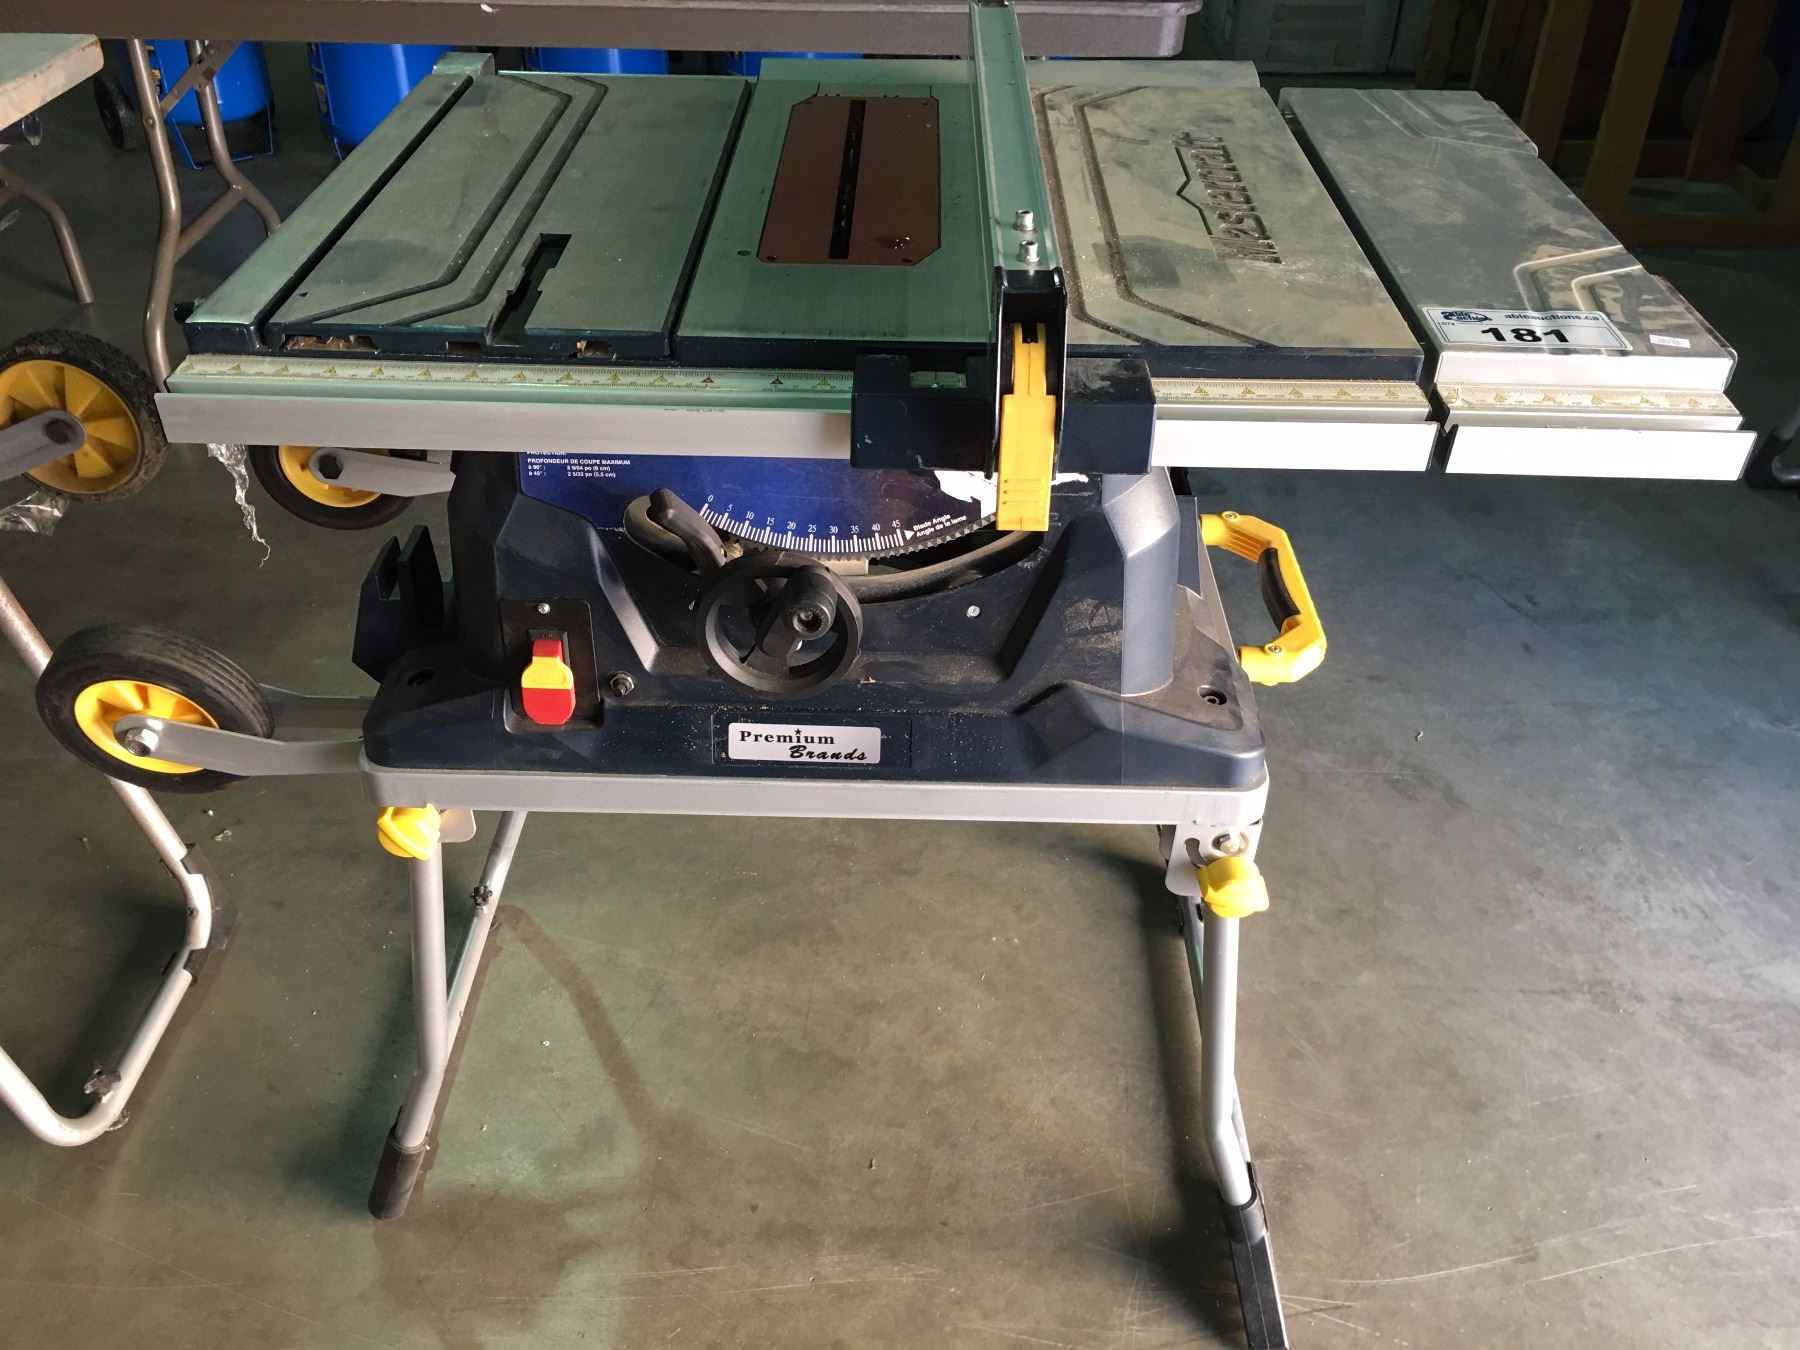 medium resolution of mastercraft 10 table saw with fold roll stand some parts mastercraft 10 inch table saw parts mastercraft 10 table saw diagram